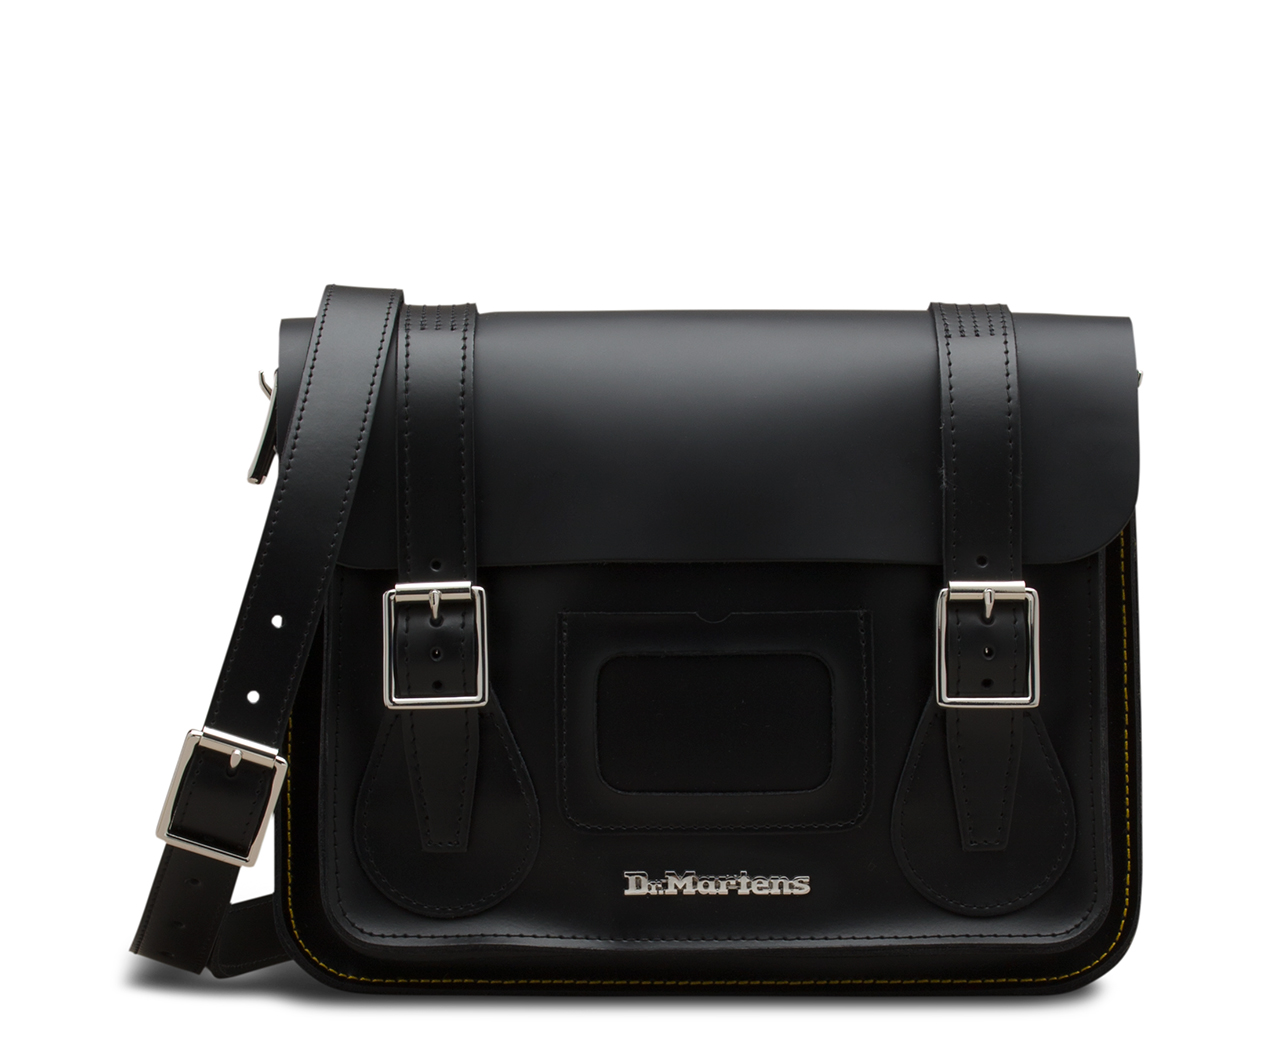 eb3d708a0441 11 inch LEATHER SATCHEL